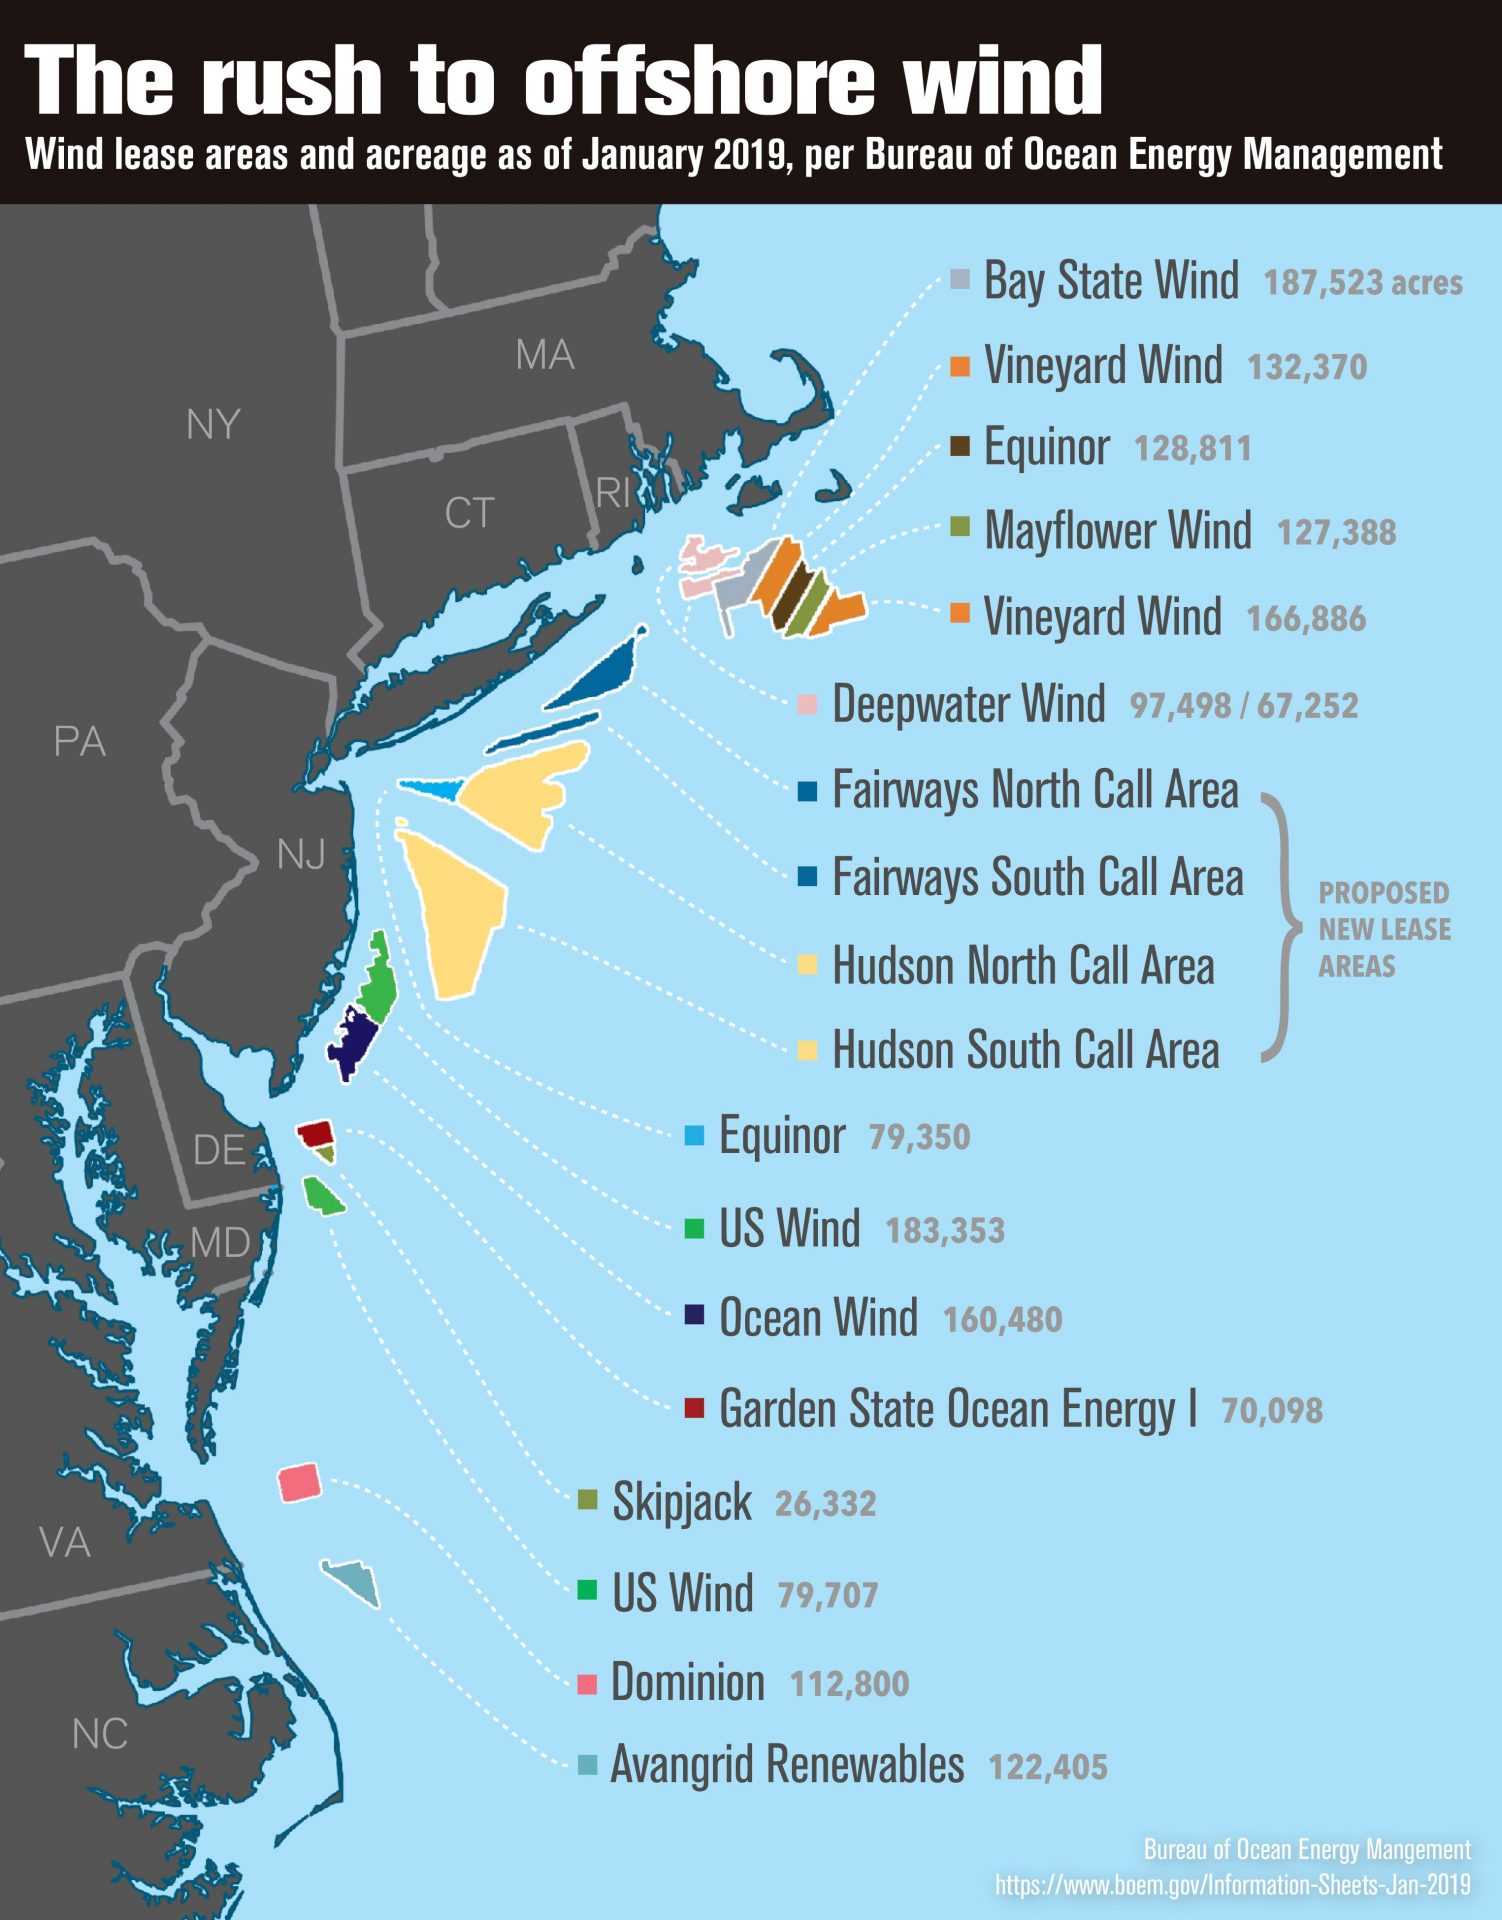 A map of offshore wind leases as of January 2019, with acreage secured by each operator. Thomas Gaulkin / BOEM